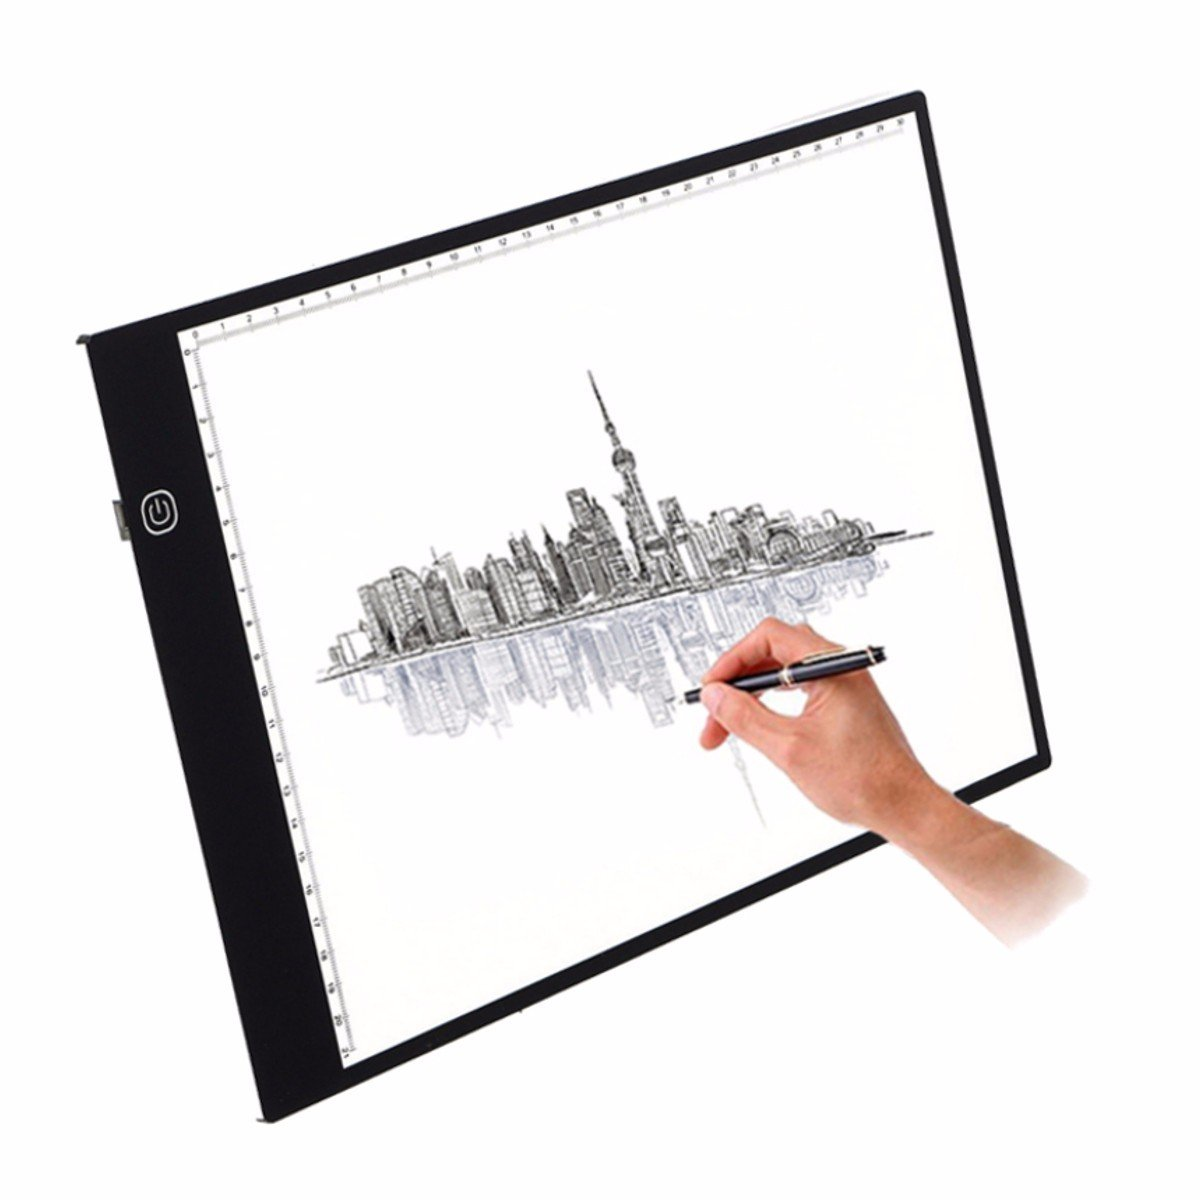 Craft light box for tracing -  Drawing Copy Tracing Light Box Track Light With Brightness Adjustable Tattoo Sketch Architecture Calligraphy Crafts For Artists Drawing Sketching A4